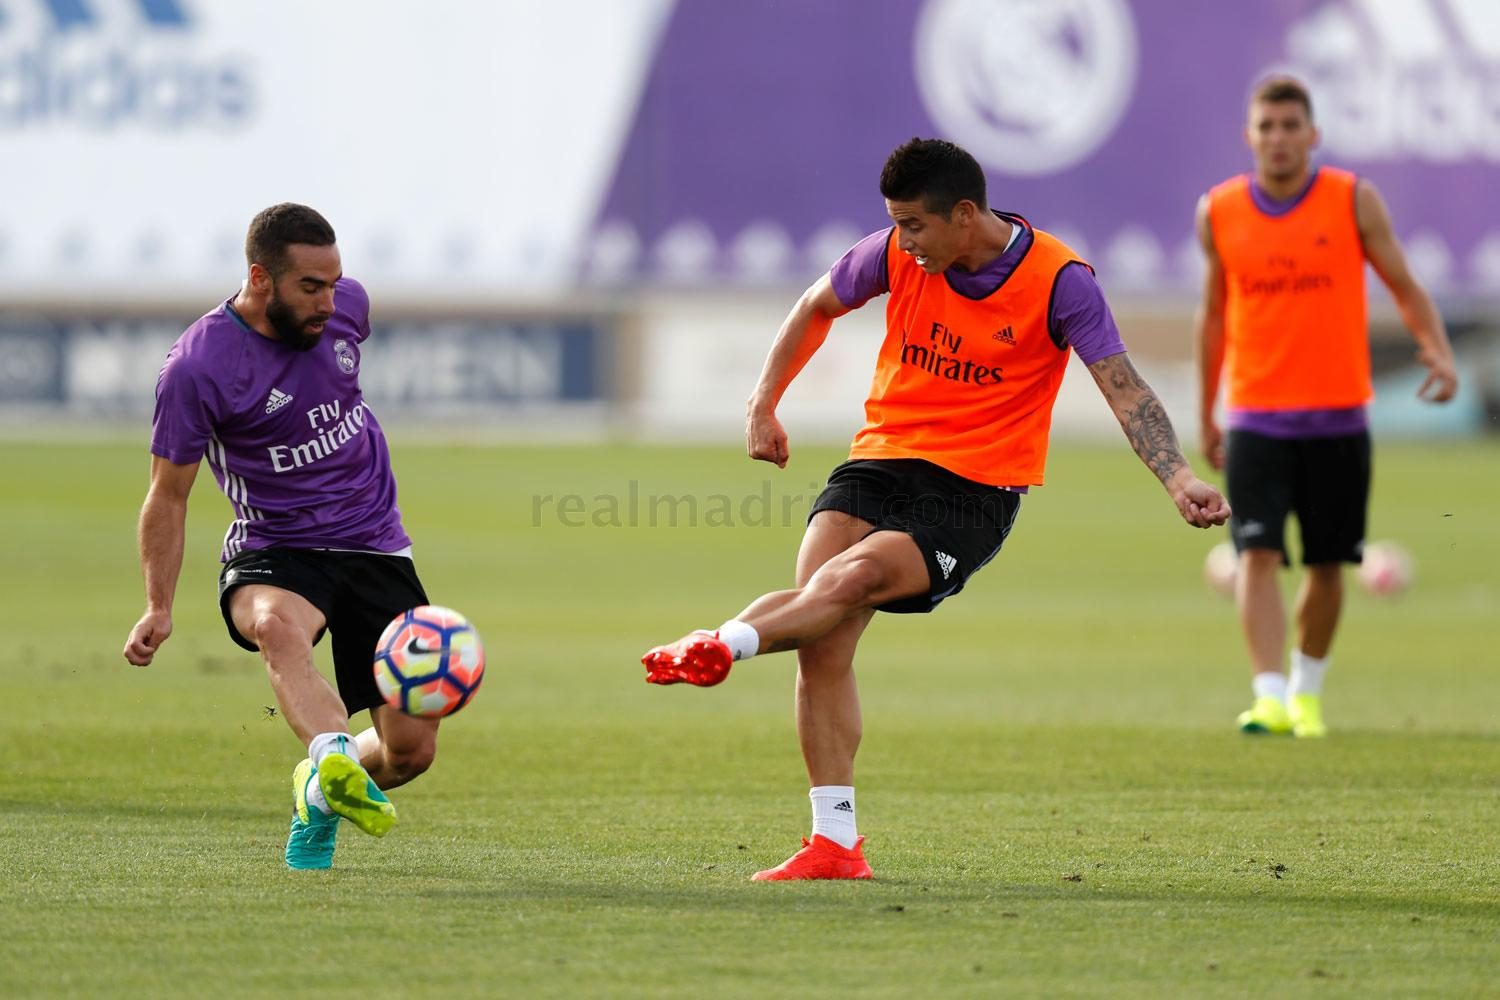 Real Madrid - Entrenamiento del Real Madrid - 17-08-2016